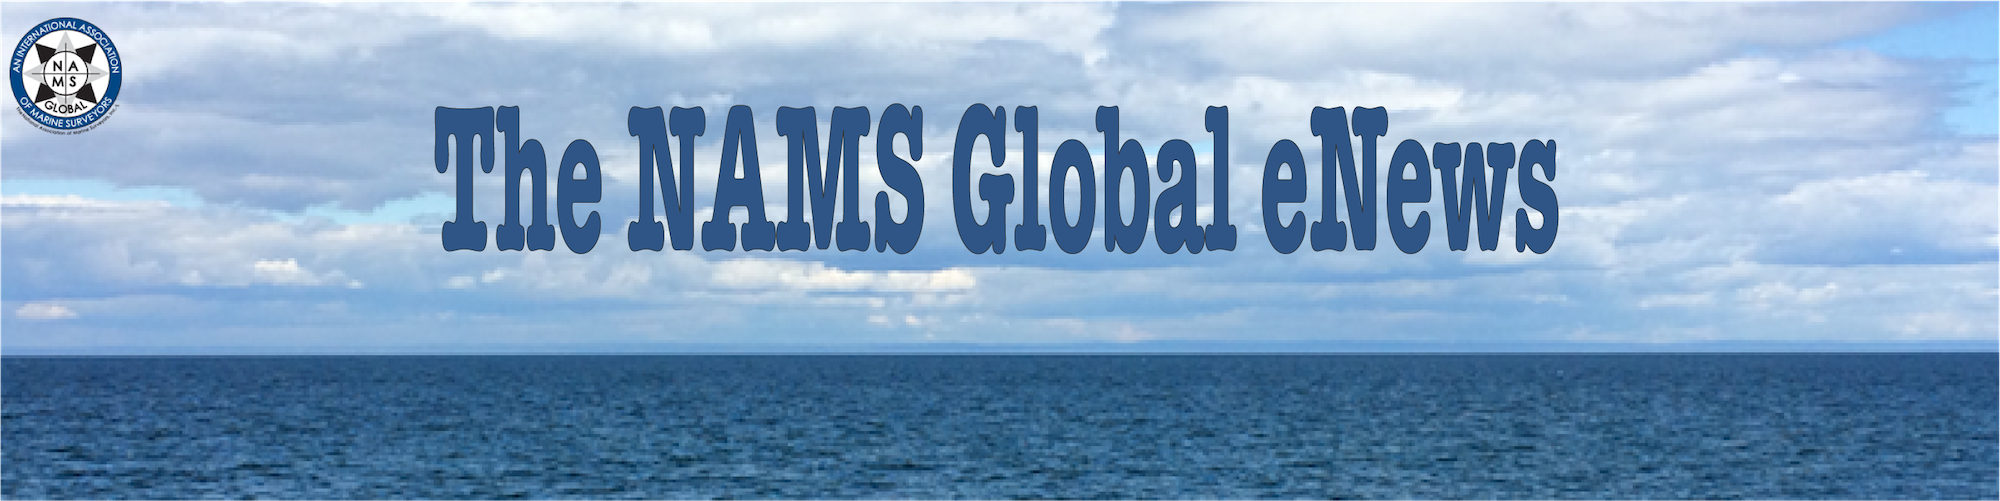 Nams-eNews-Banner.png